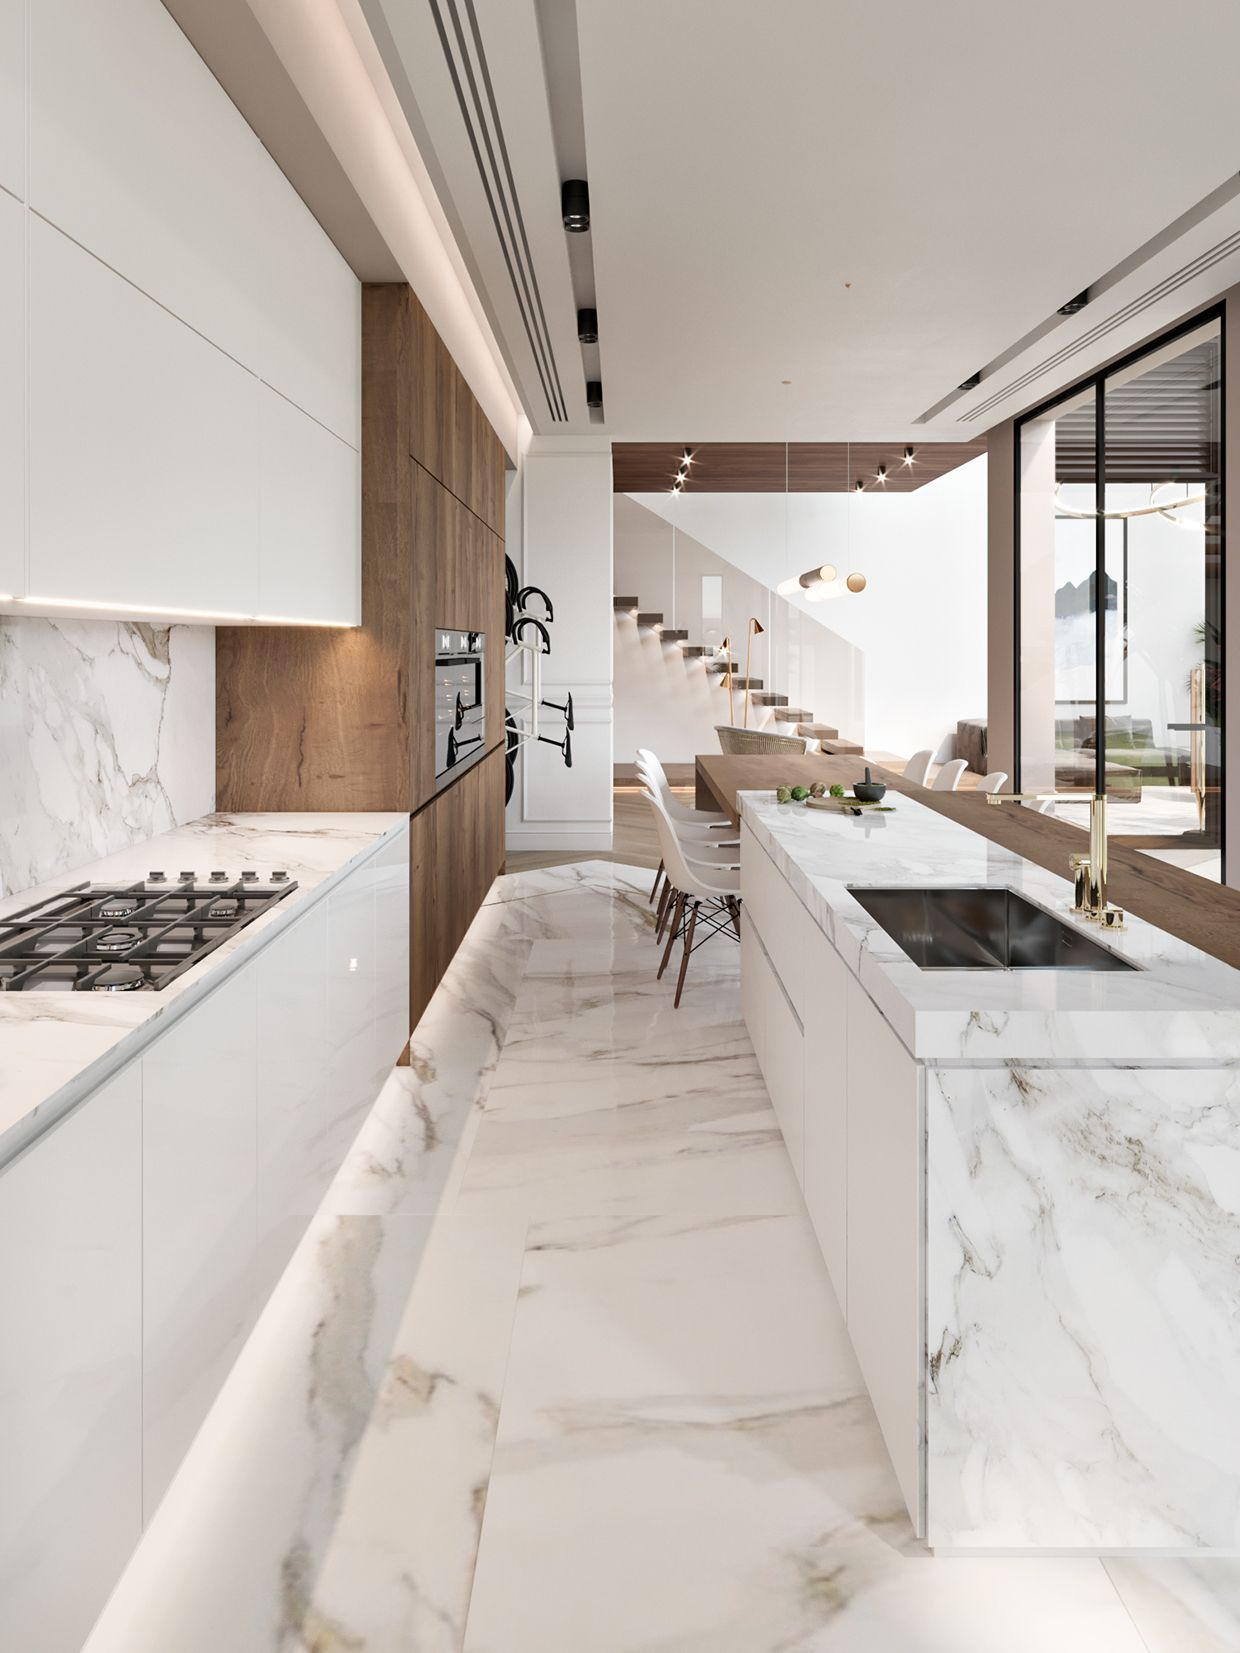 Top tips minimalist living room tv modern fireplaces decor home interior design kitchen tiles counter tops rustic also unusual article uncovers the deceptive practices of waterfall rh pinterest